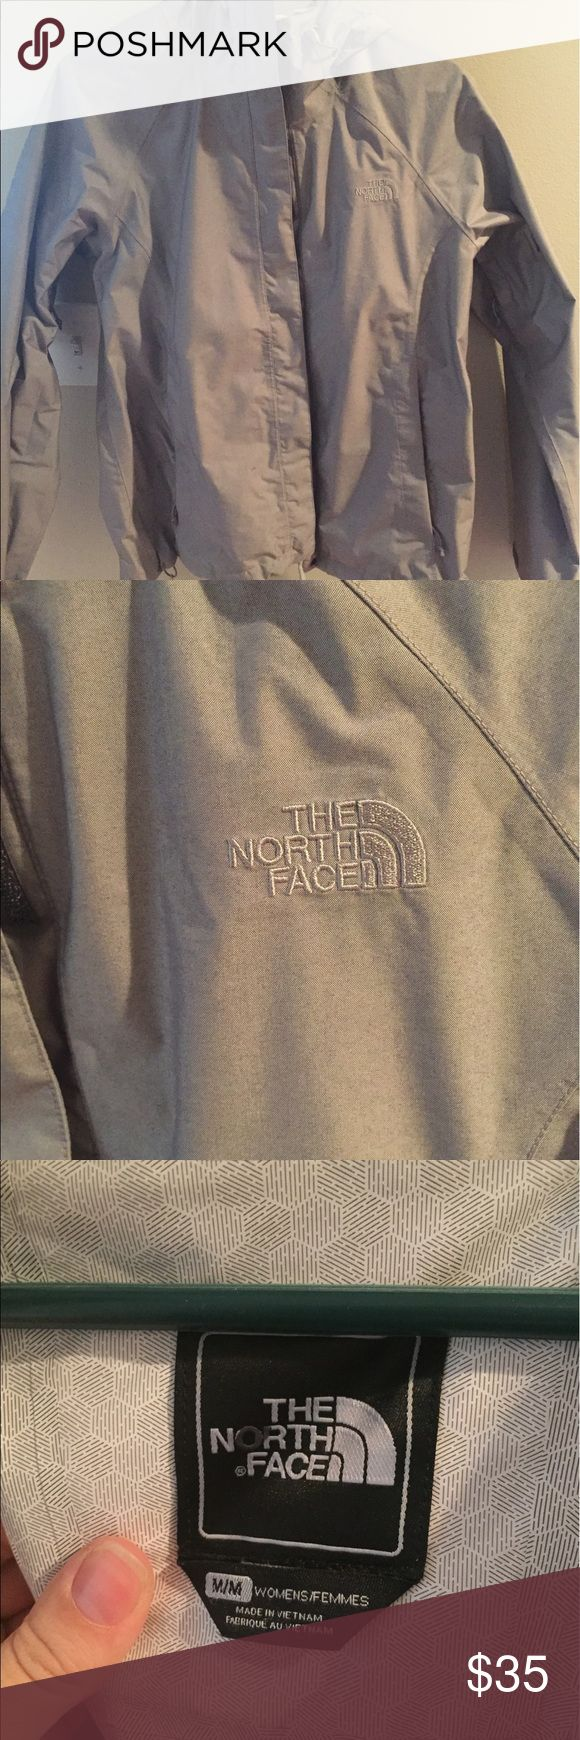 "The North Face jacket size medium This is a jacket by The North Face in size medium, it was purchased at the outlet so as you can see on the picture of the tag, the ""o"" in the NorthFace is blacked out. It is a purplish grey color which doesn't go with my skin tone which is why I'm selling, only worn a couple times. The North Face Jackets & Coats Utility Jackets"